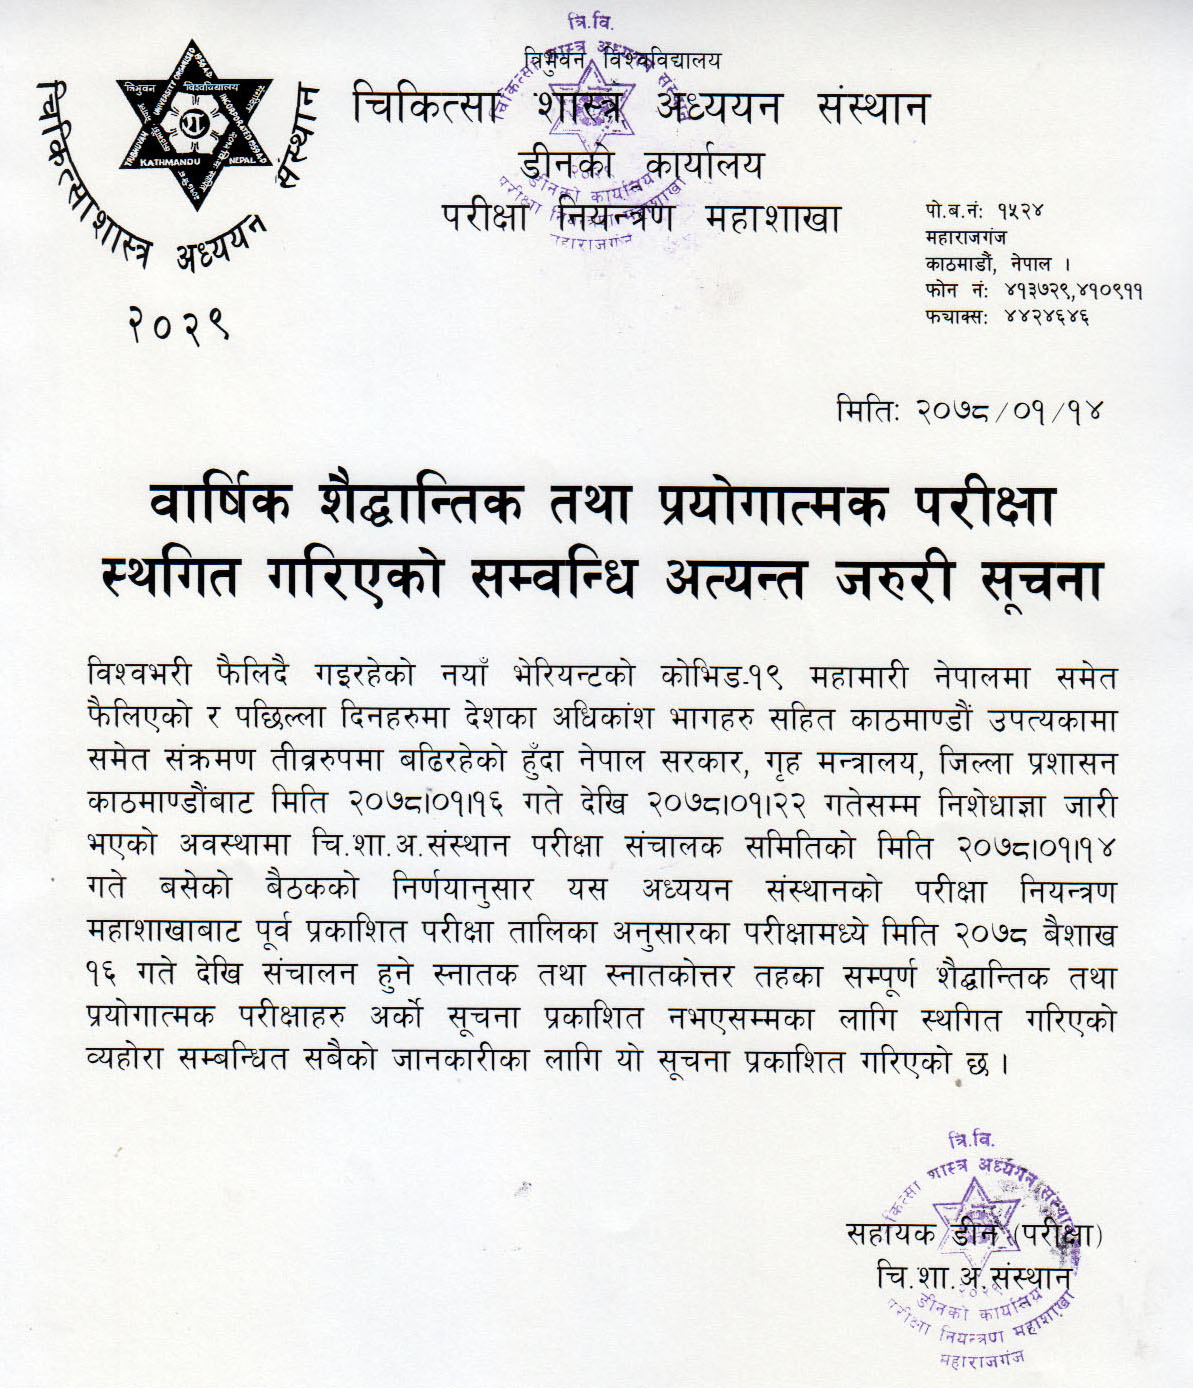 Exam Postponed Notice of Theory and Practical Exams 2078.